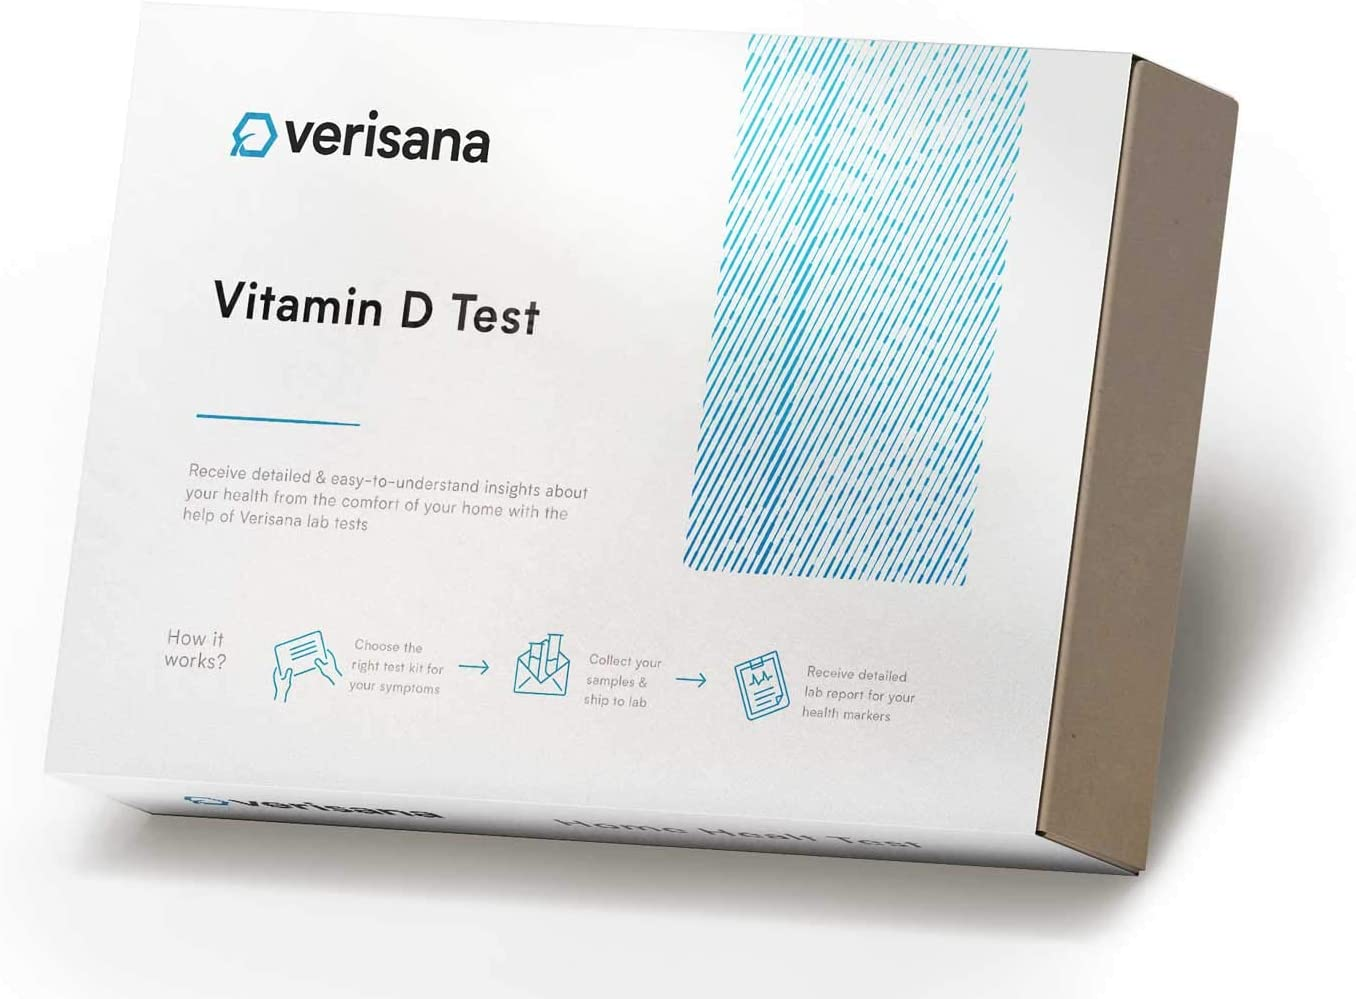 Verisana Vitamin D Home Health Test – Check Your Vitamin D Level Easily & conveniently at Home